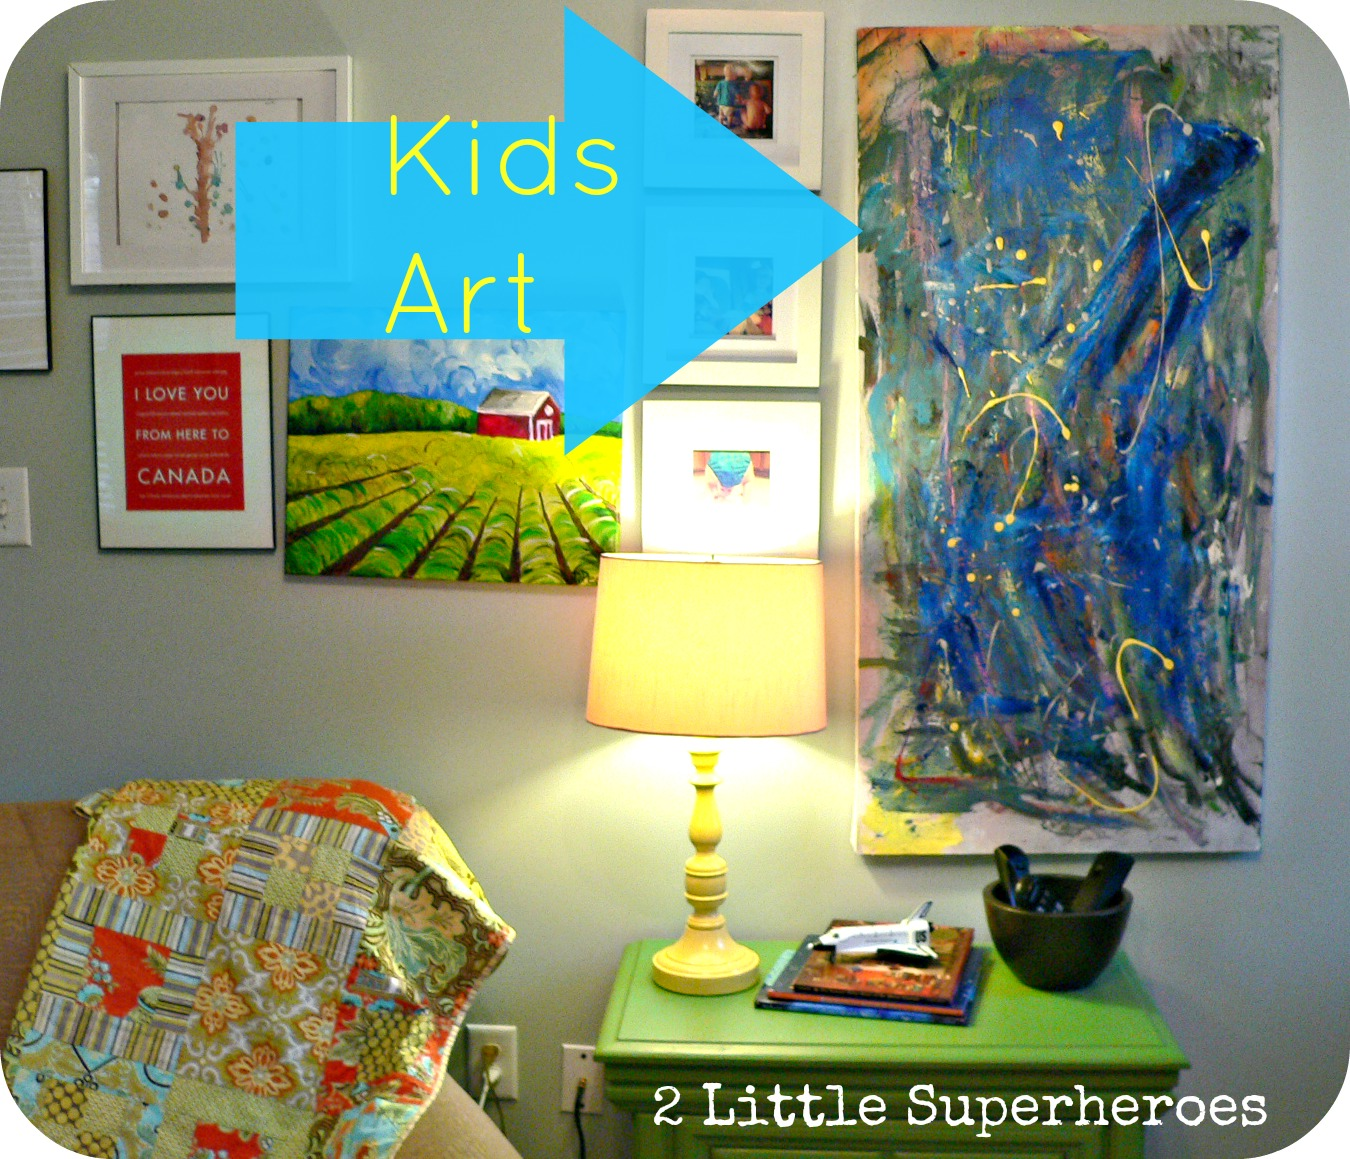 kidsart Lamp & Ugly Painting Makeover